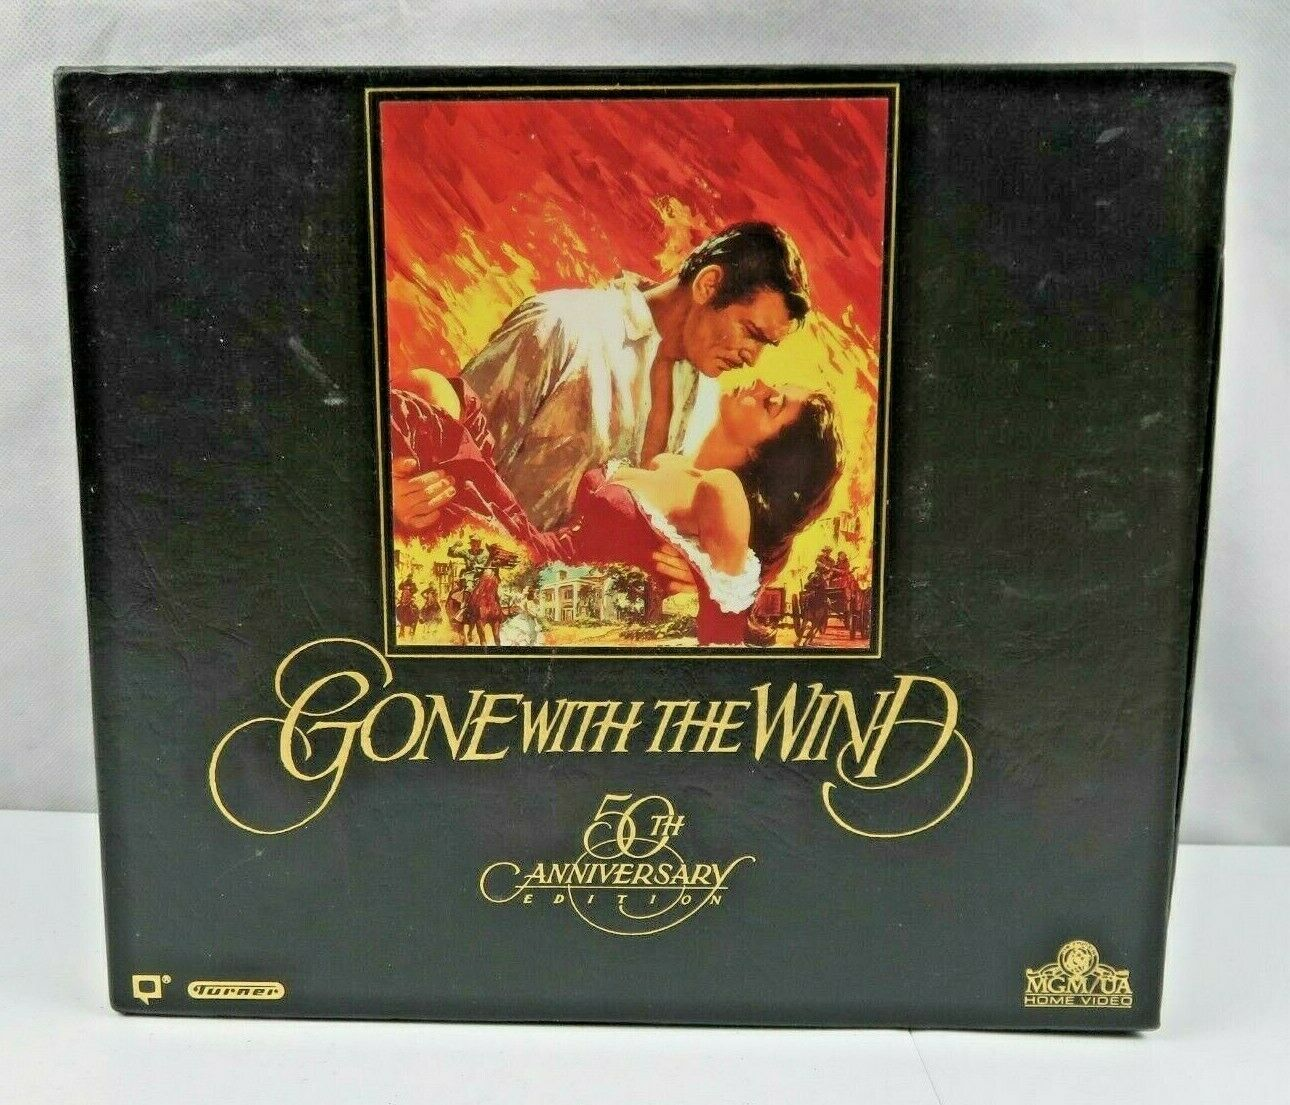 Primary image for Gone with the Wind 50th Anniversary Edition VHS Boxed Limited Numbered Set